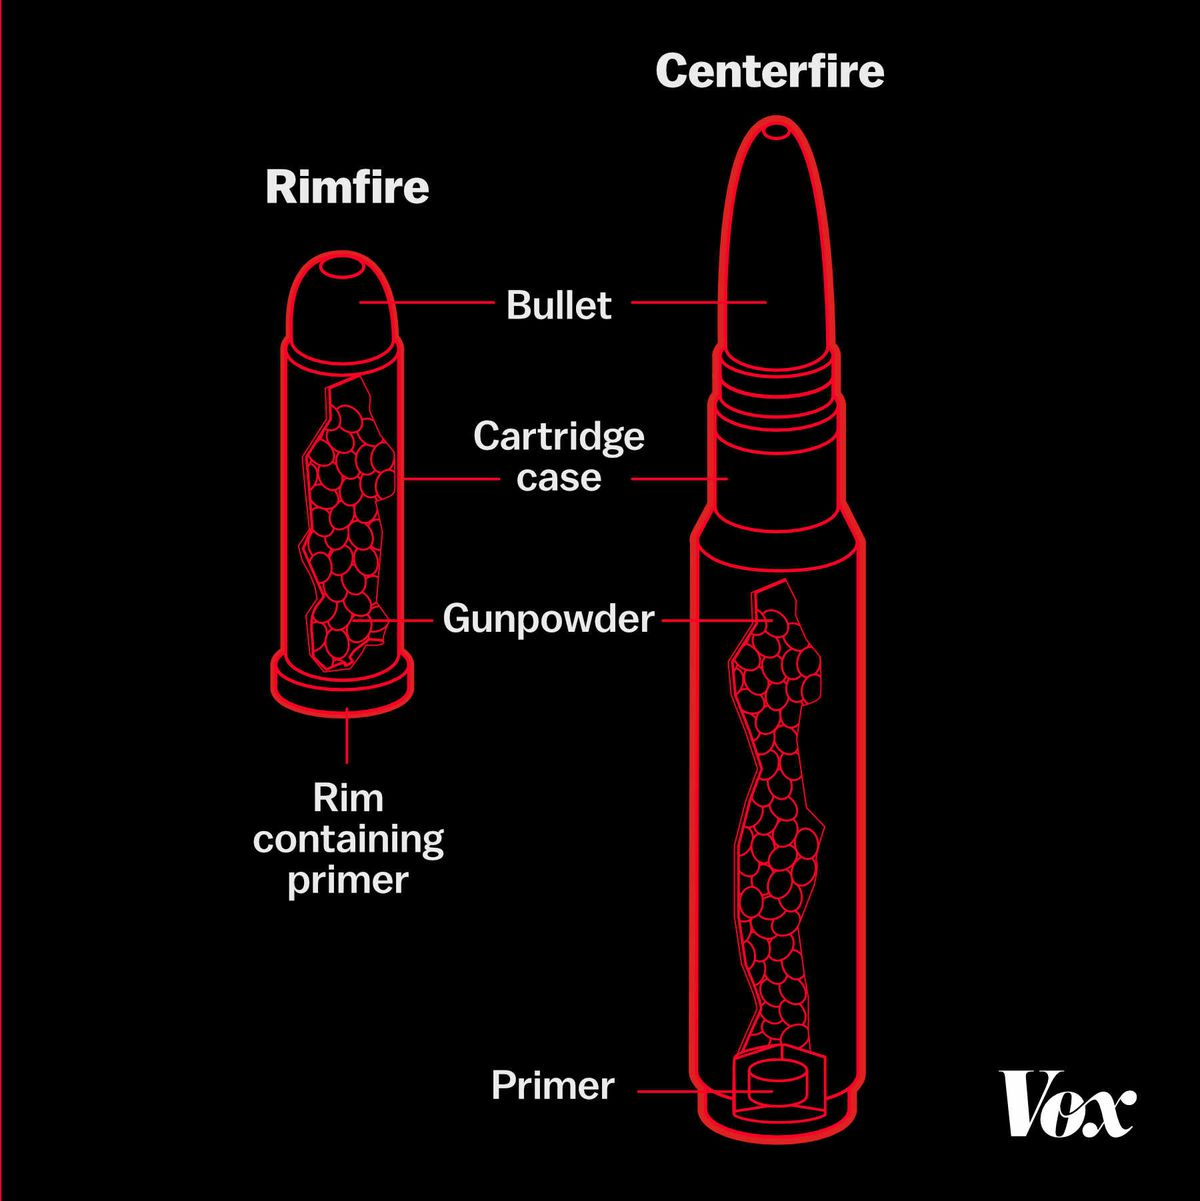 A diagram showing components of cartridges